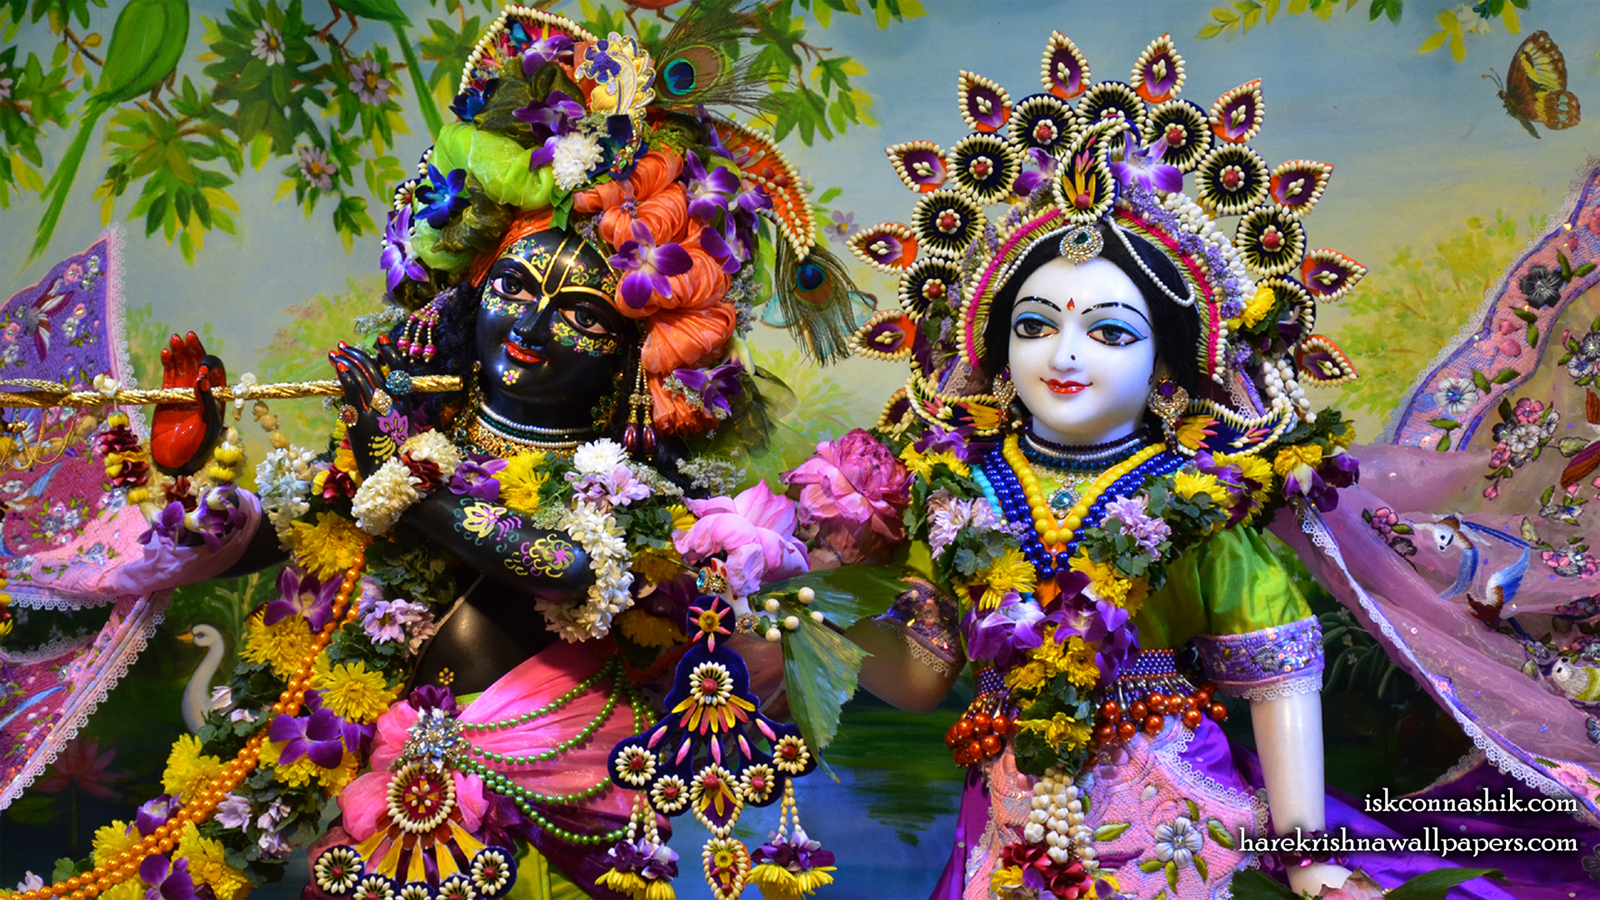 Sri Sri Radha Madan Gopal Close up Wallpaper (016) Size 1600x900 Download